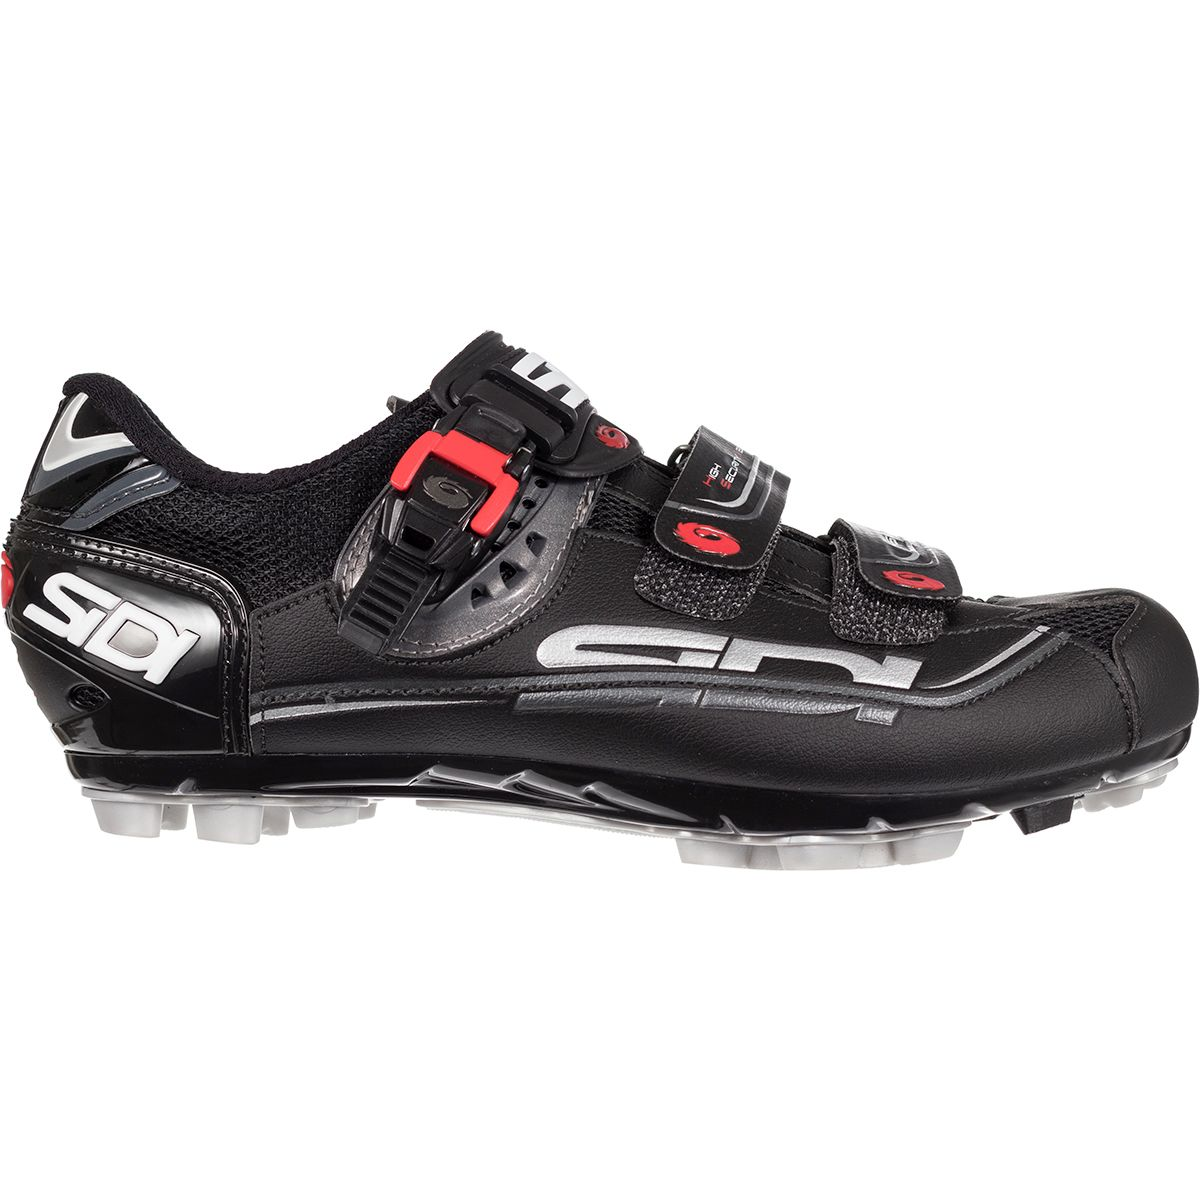 Sidi  Dominator Fit Mega Shoes  Men's 70404